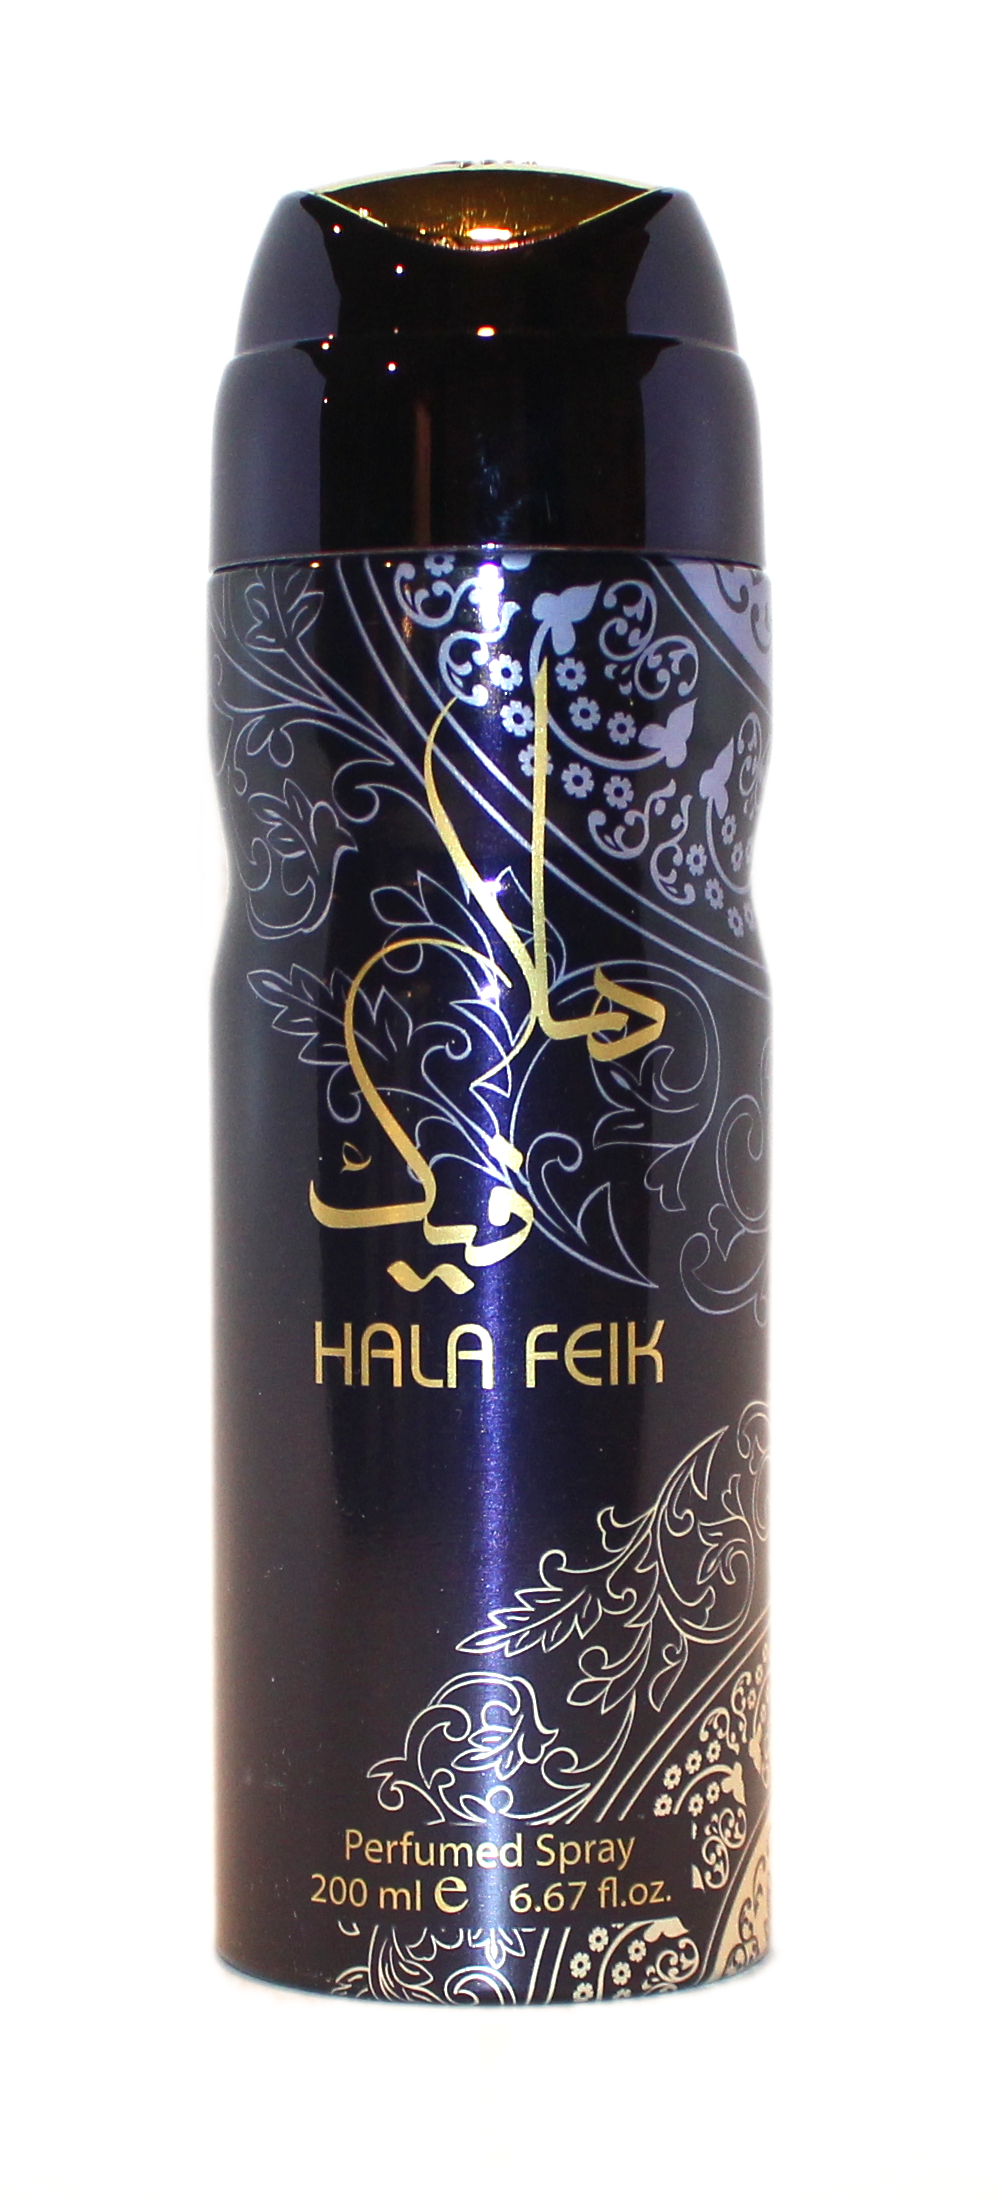 Hala Feik - Deodorant Perfumed Spray (200 ml/6.67 fl.oz) by Lattafa